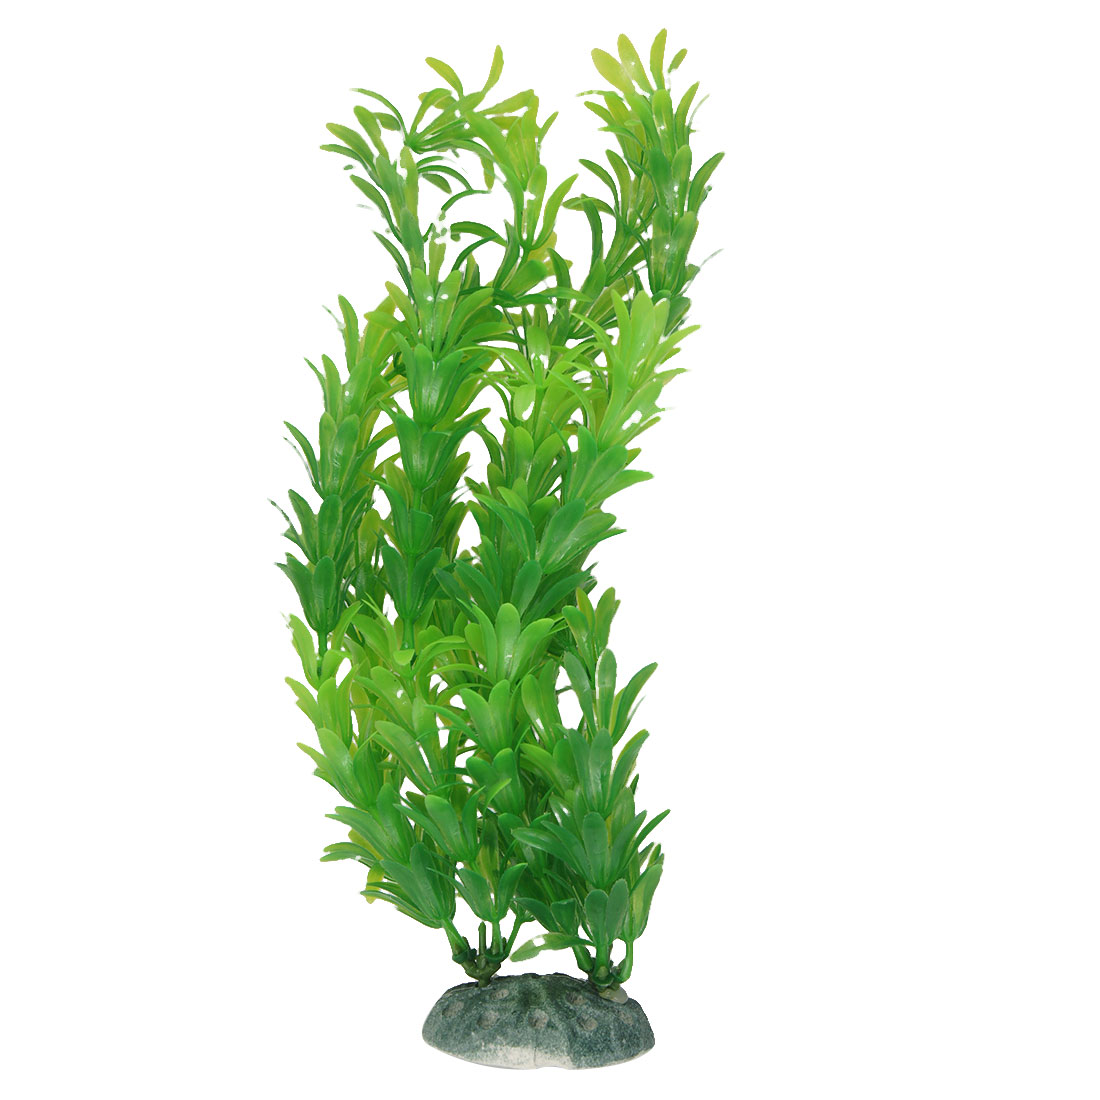 25cm Height Green Plastic Grass Underwater Decor for Fish Tank